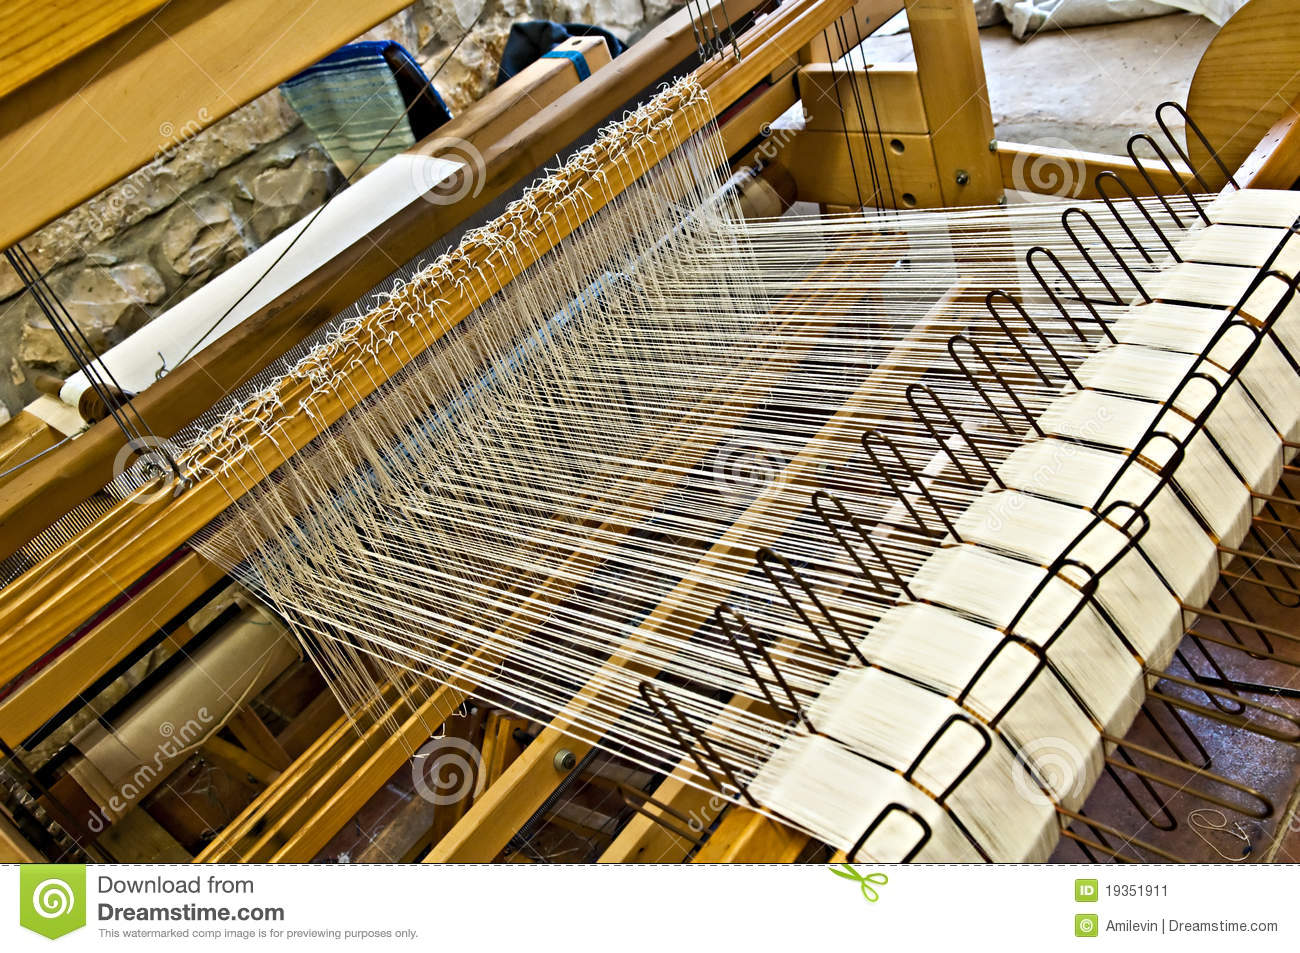 weaving-machine-19351911.jpg